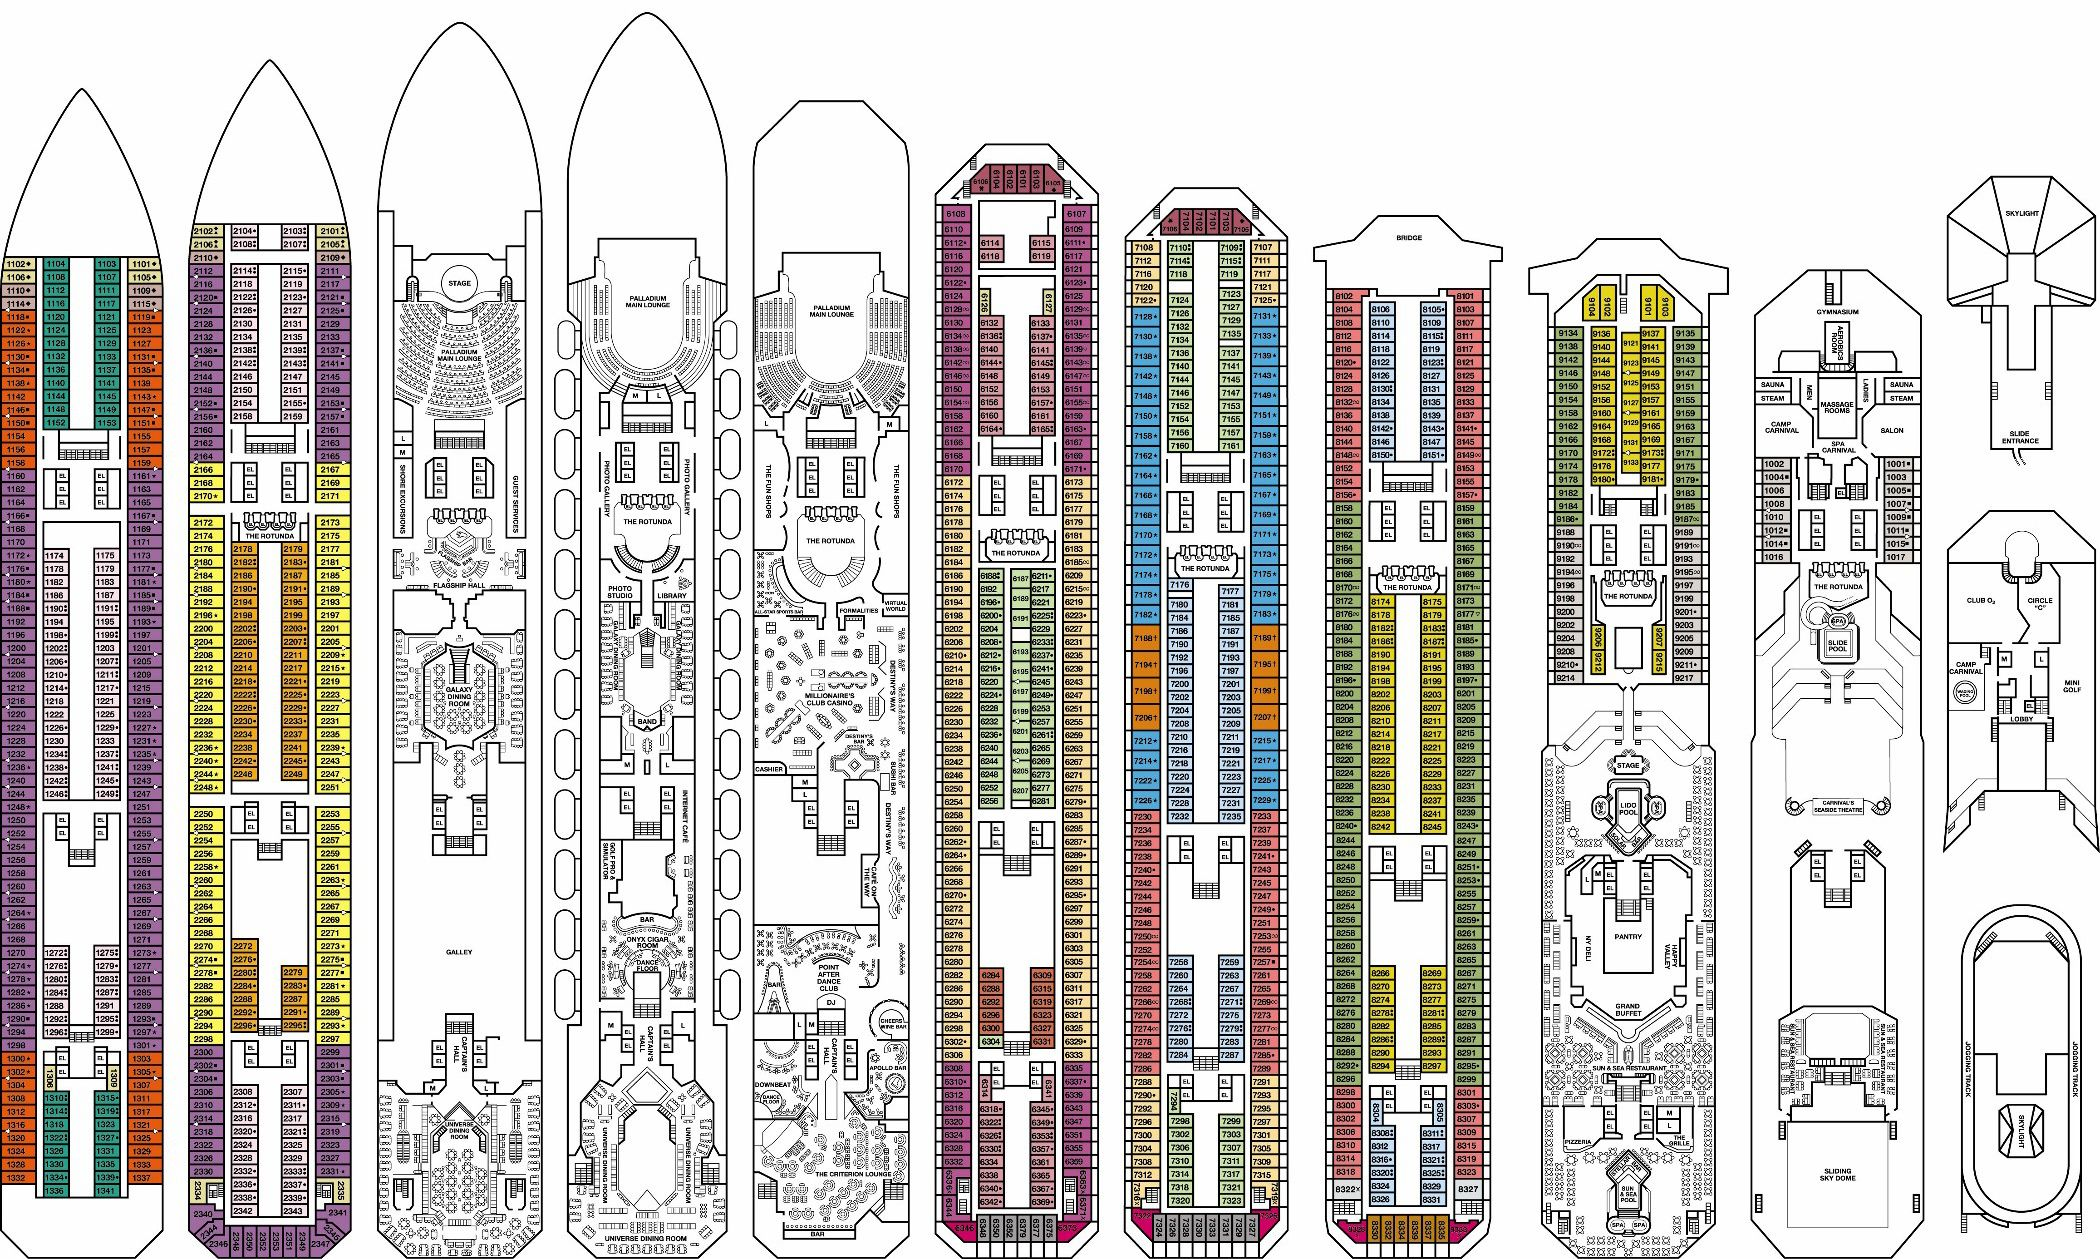 Deck Plan RCL Enchantment Of The Seas Pinterest